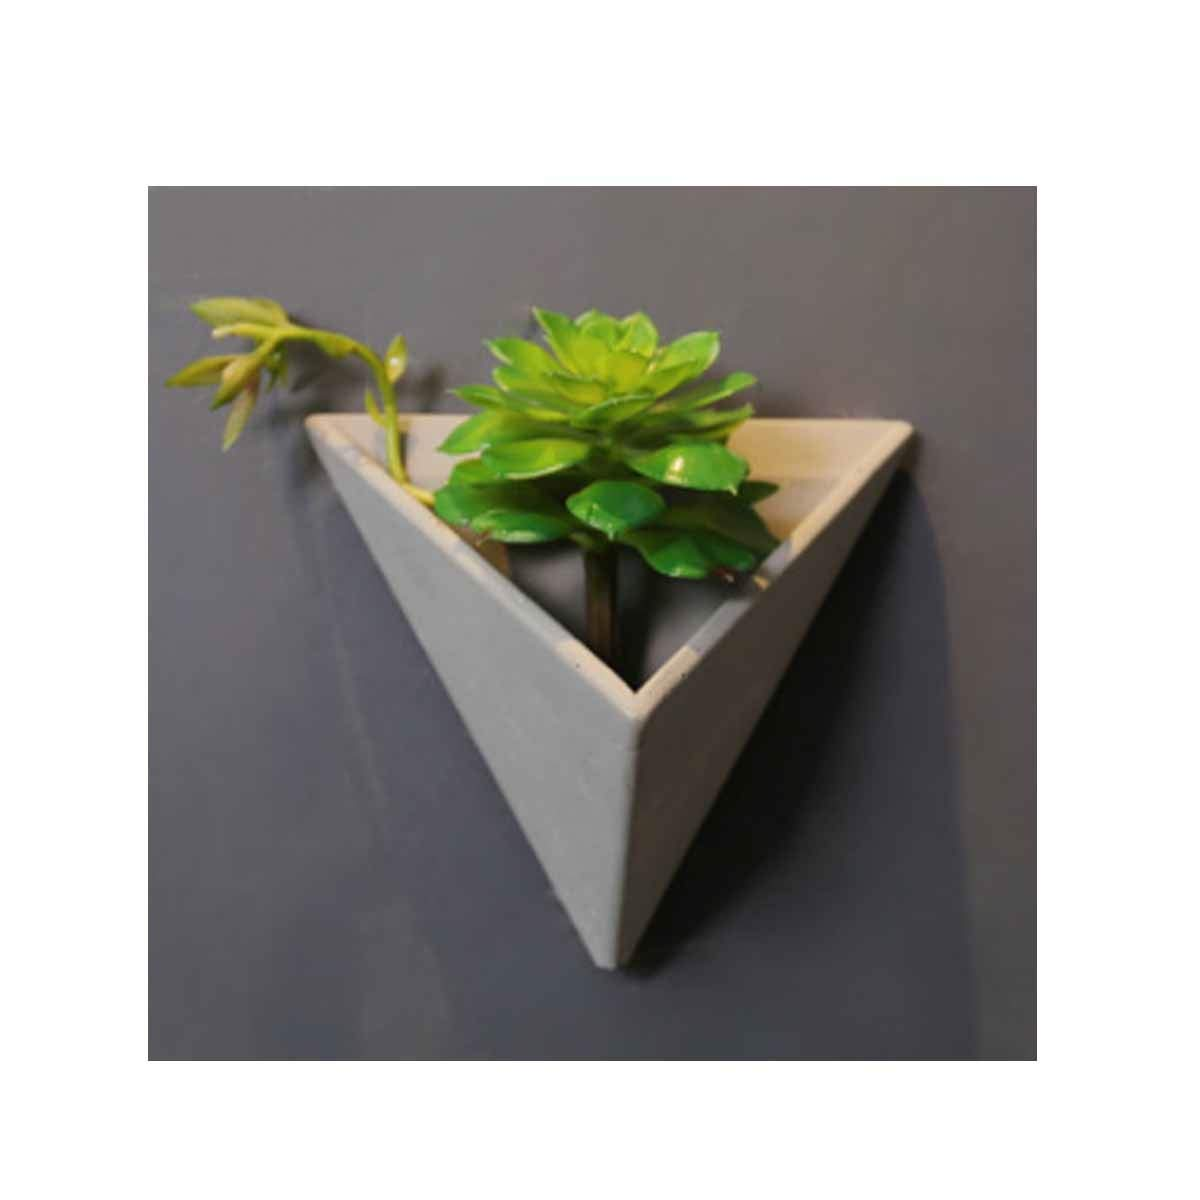 Lotus lotus flower pot combination Jingfeng Wall Decorations, Retro Classic Style, Creative Wall Hanging Living Room Kitchen Corridor Wall Hangings, 19cm Treasure Lotus Flower Pot Combination Fashion